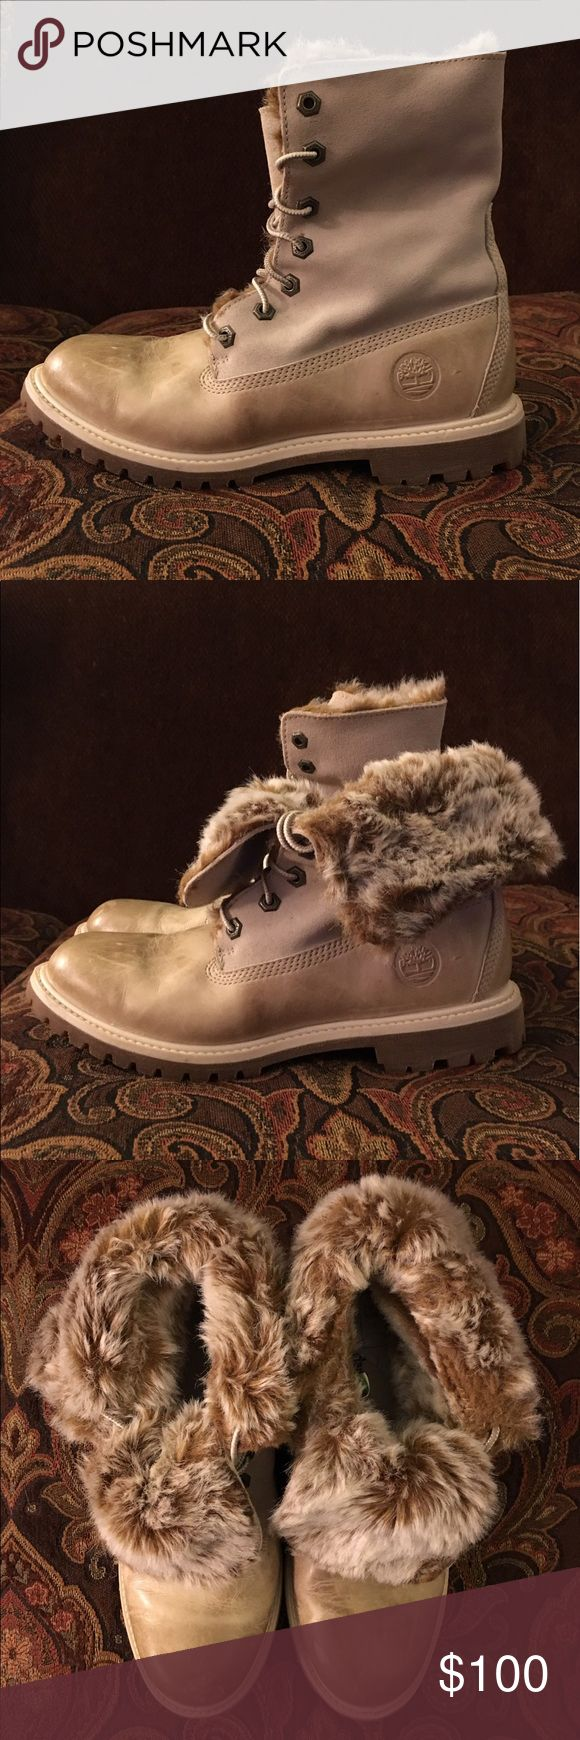 Timberland boots White leather Timberland fold-down winter boots. Faux fur detail. Excellent condition. Brand new, never worn. I am listing these because I don't plan to set foot in snow again! They can be worn laced all the way up or folded down. Open to offers. Timberland Shoes Winter & Rain Boots